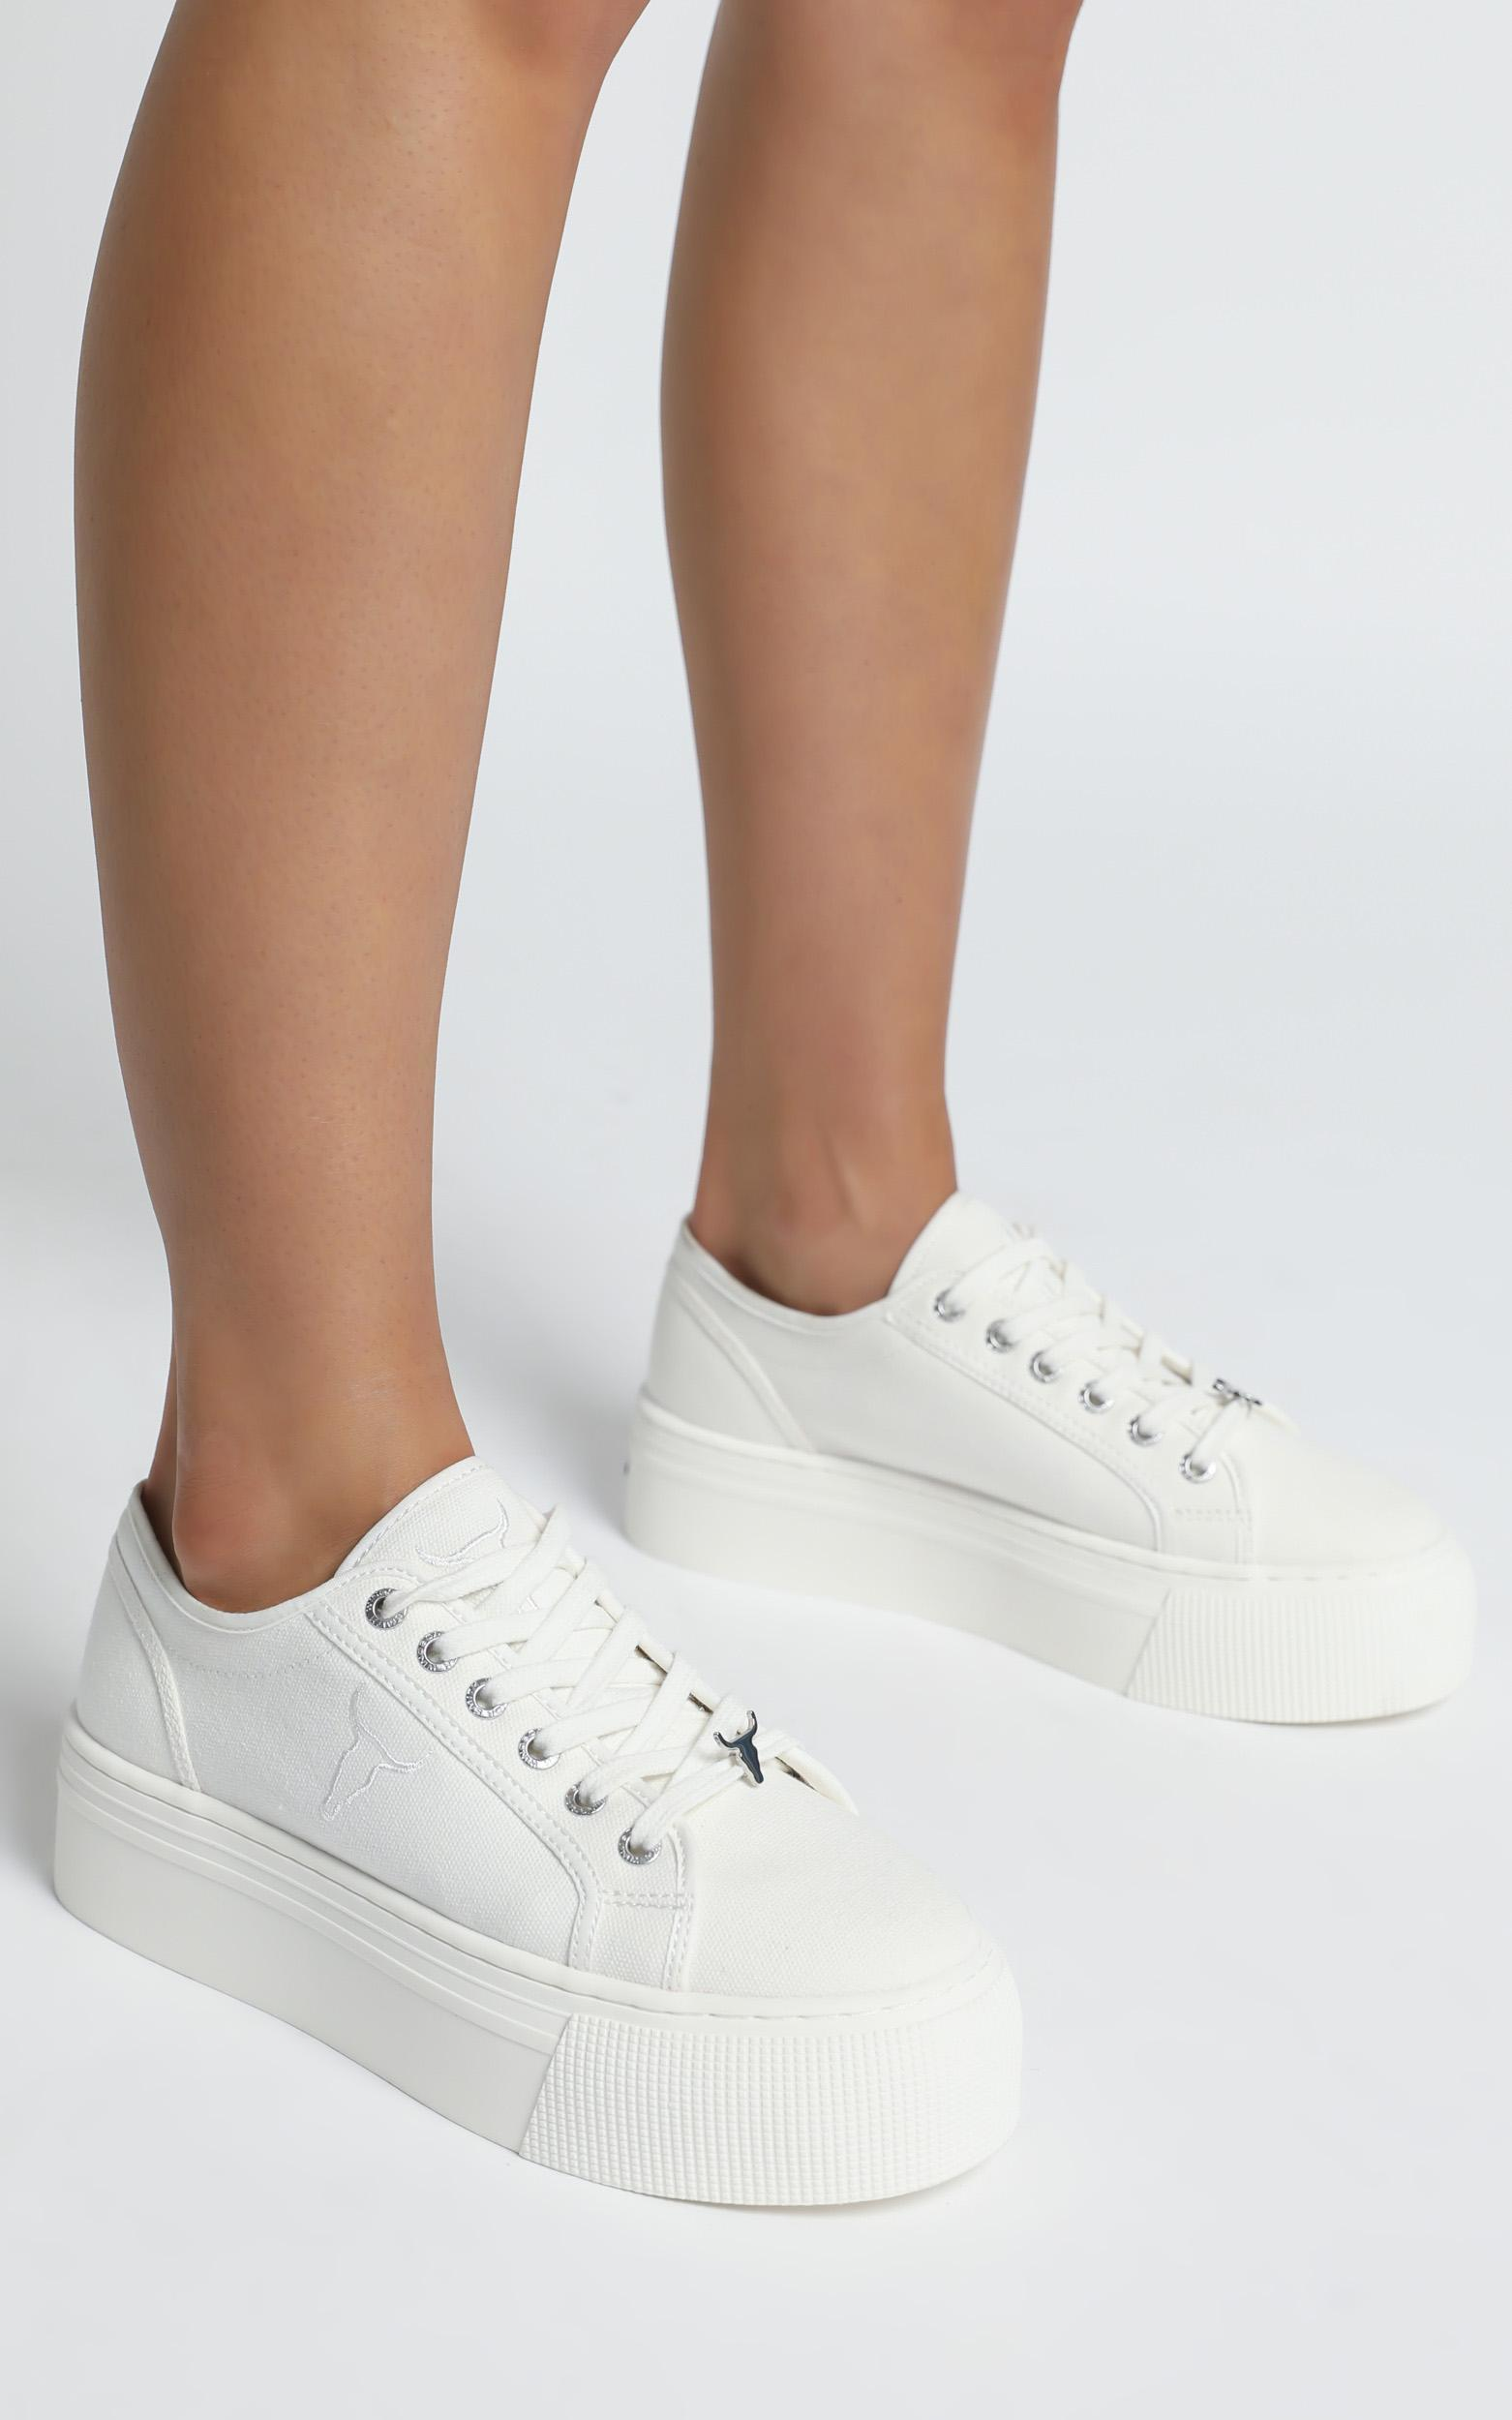 Windsor Smith - Ruby Sneakers in White Canvas - 6, WHT1, hi-res image number null